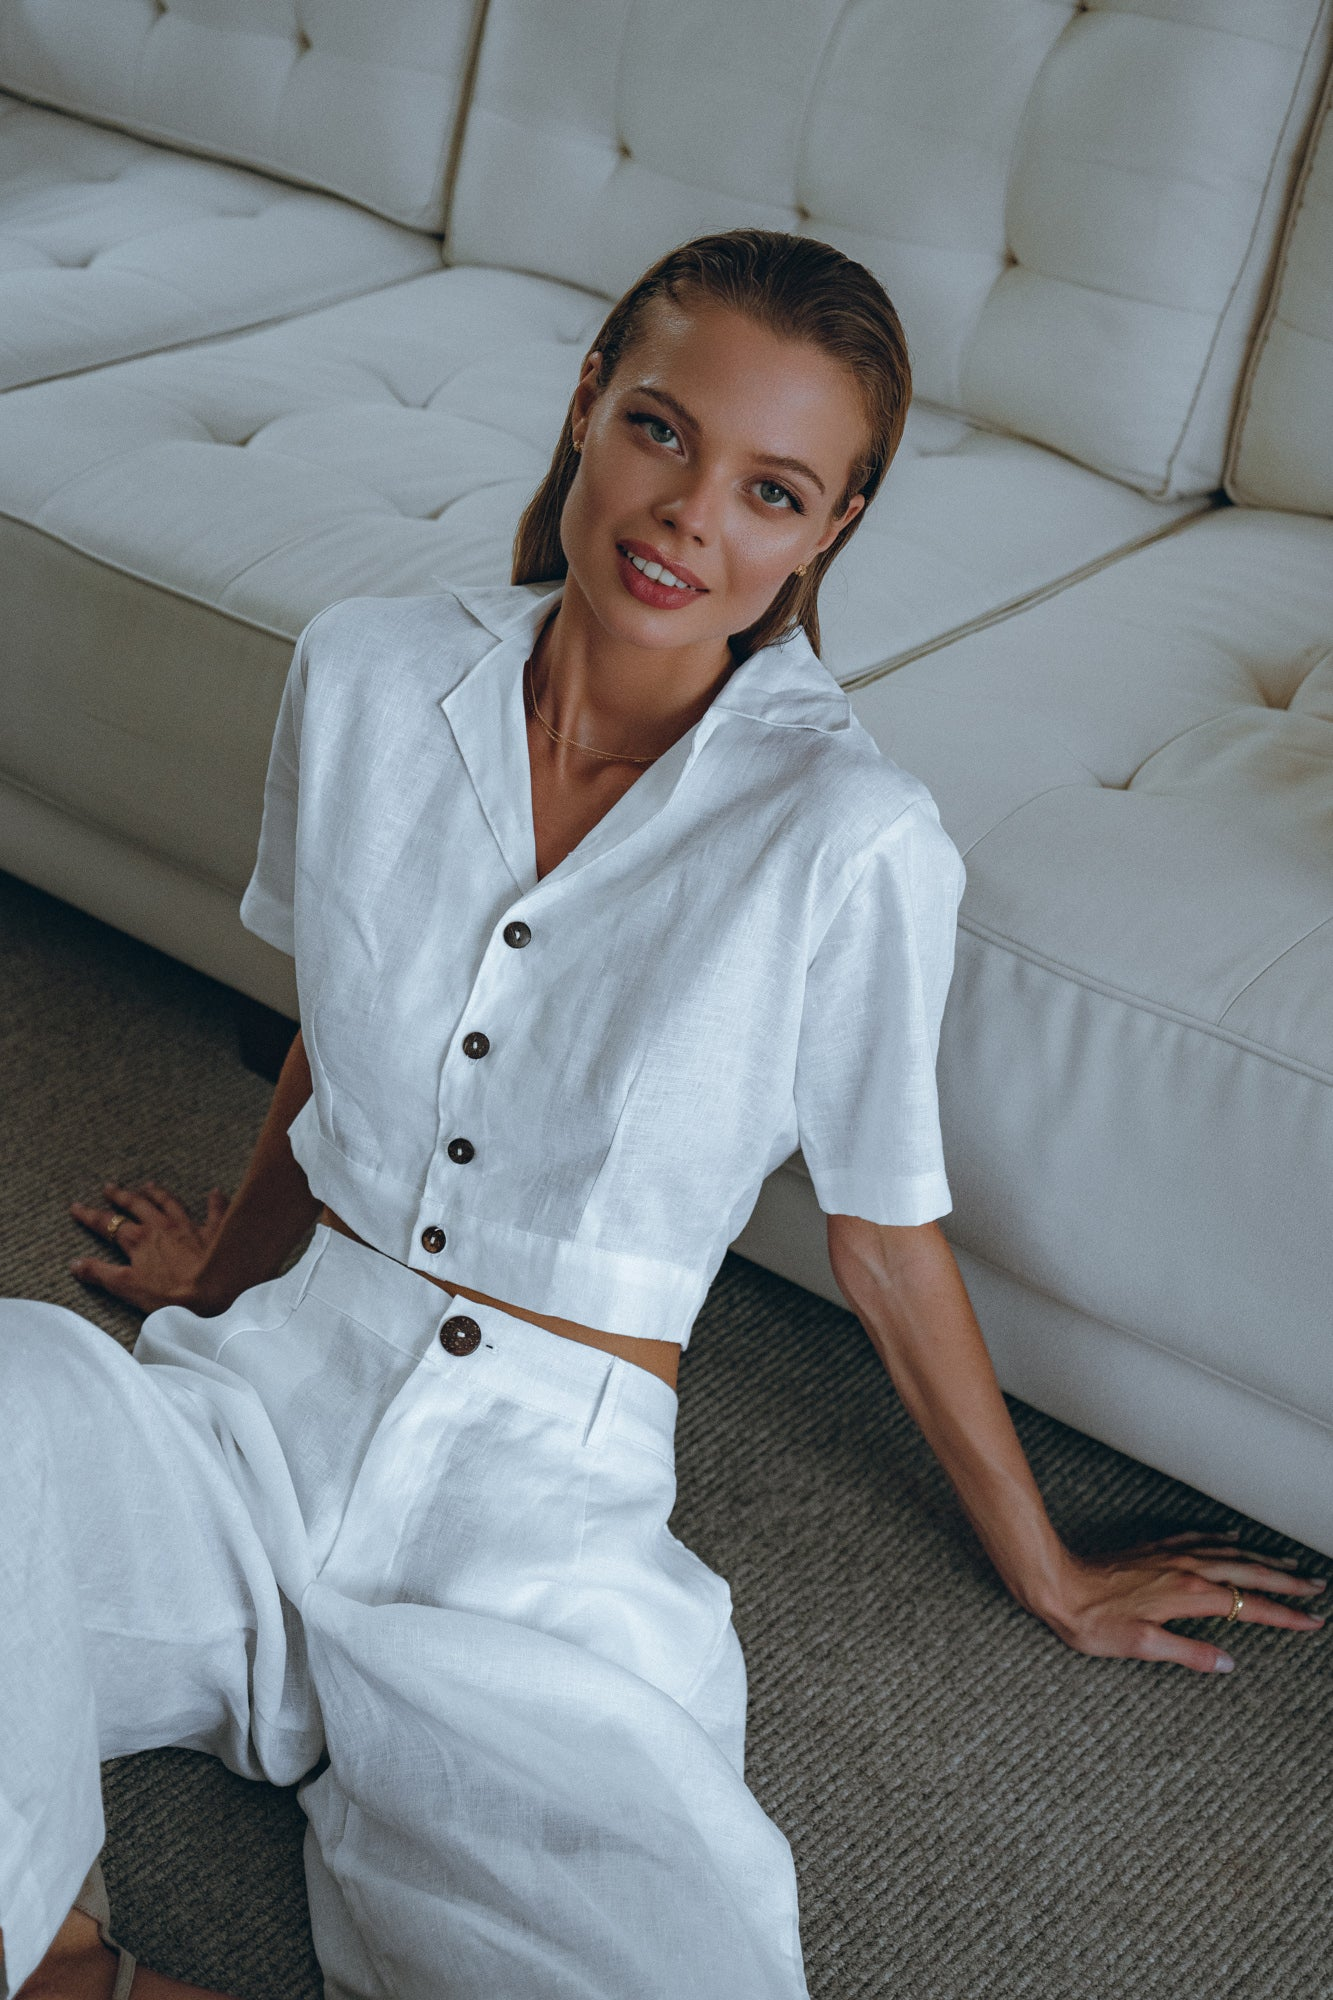 model who is smiling into the camera is dressed in a white linen shirt and white matching pants